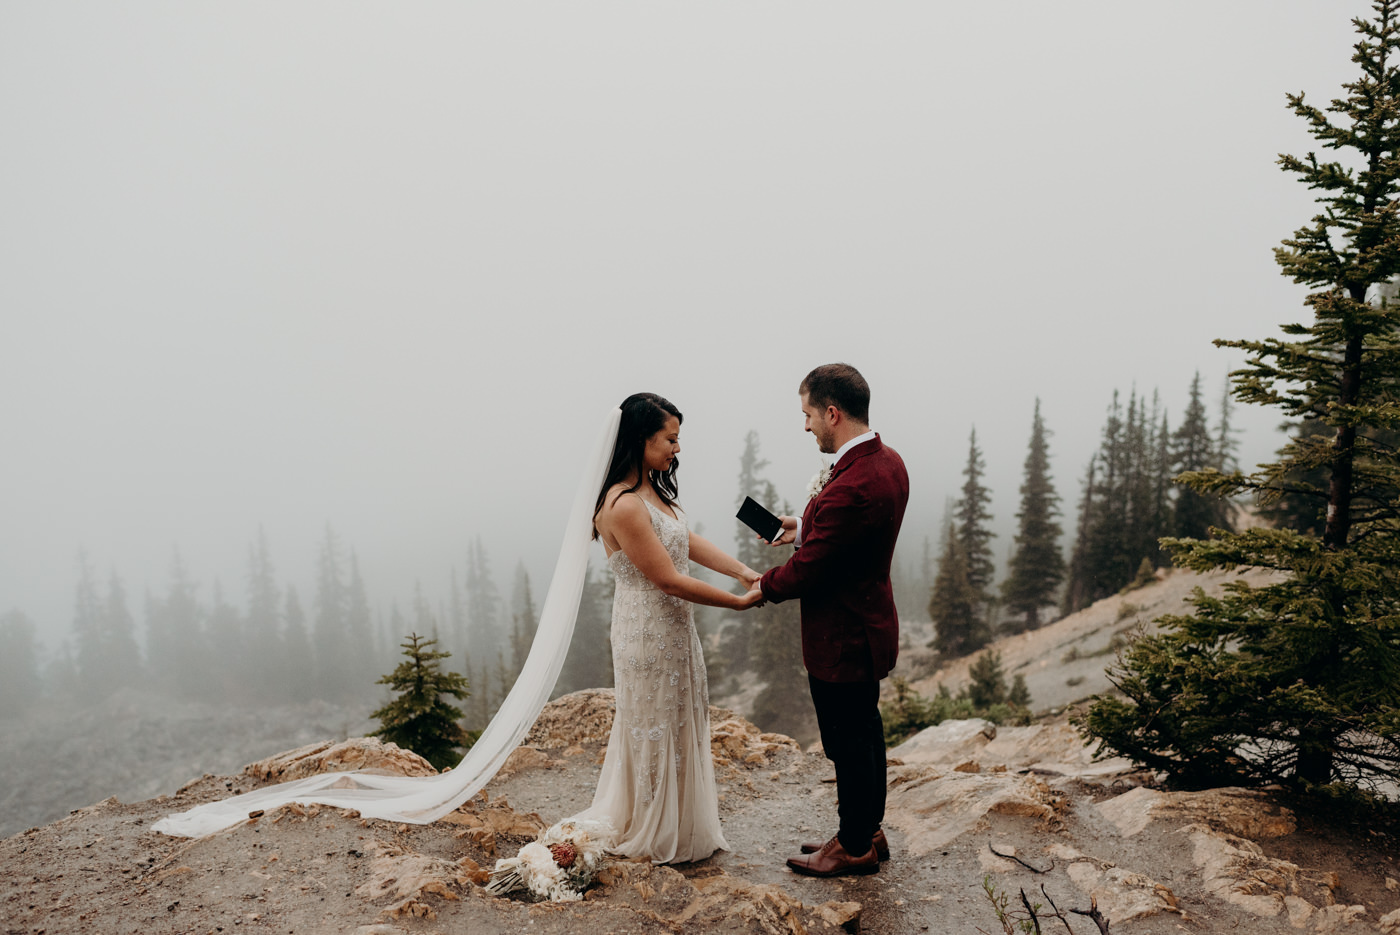 groom reading vows in the rain on a foggy mountainside in Banff